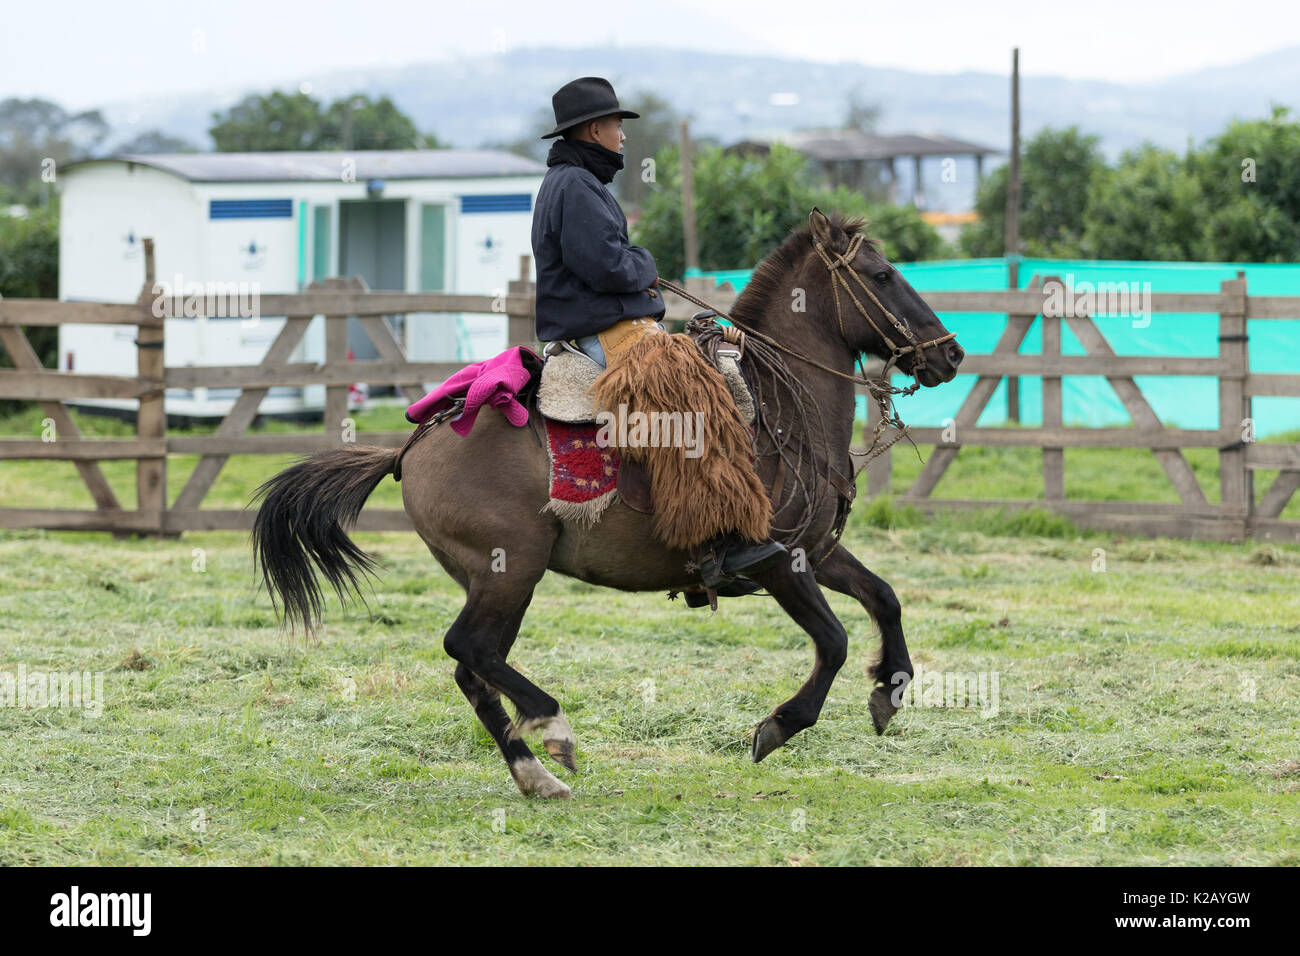 June 3, 2017 Machachi, Ecuador: cowboy wearing furry chaps riding a horse in the Andes - Stock Image